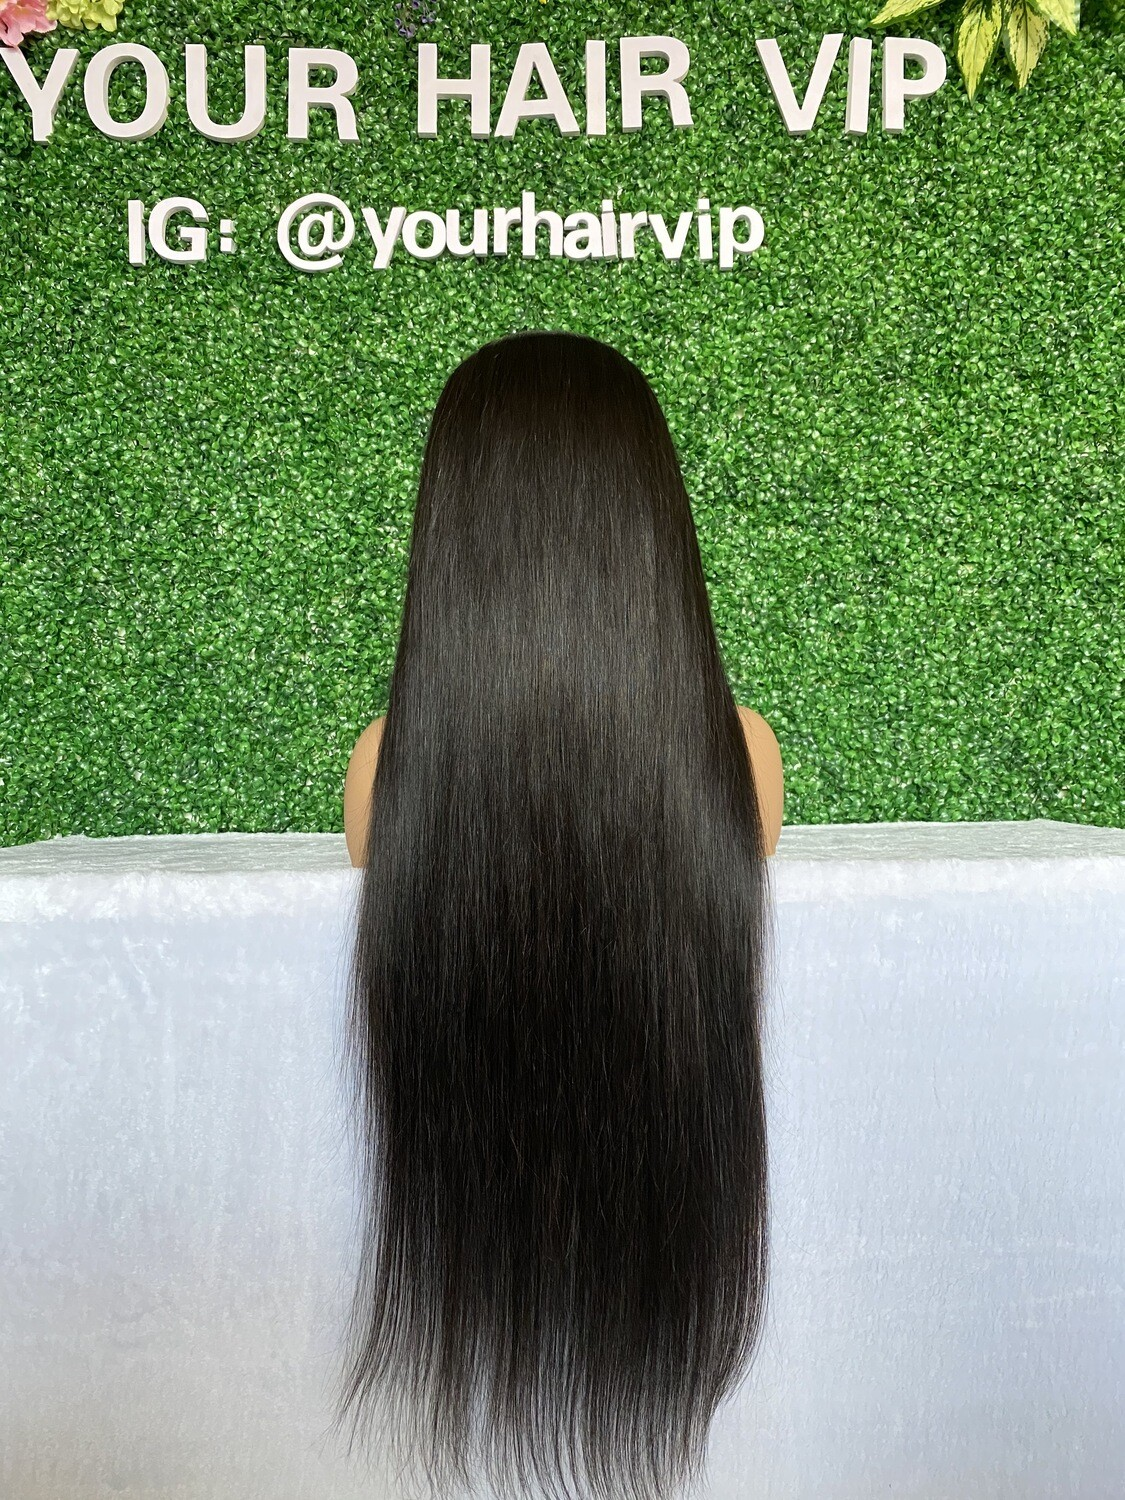 Custom 13 x 4 HD Lace Frontal Wig Straight/ Body Wave